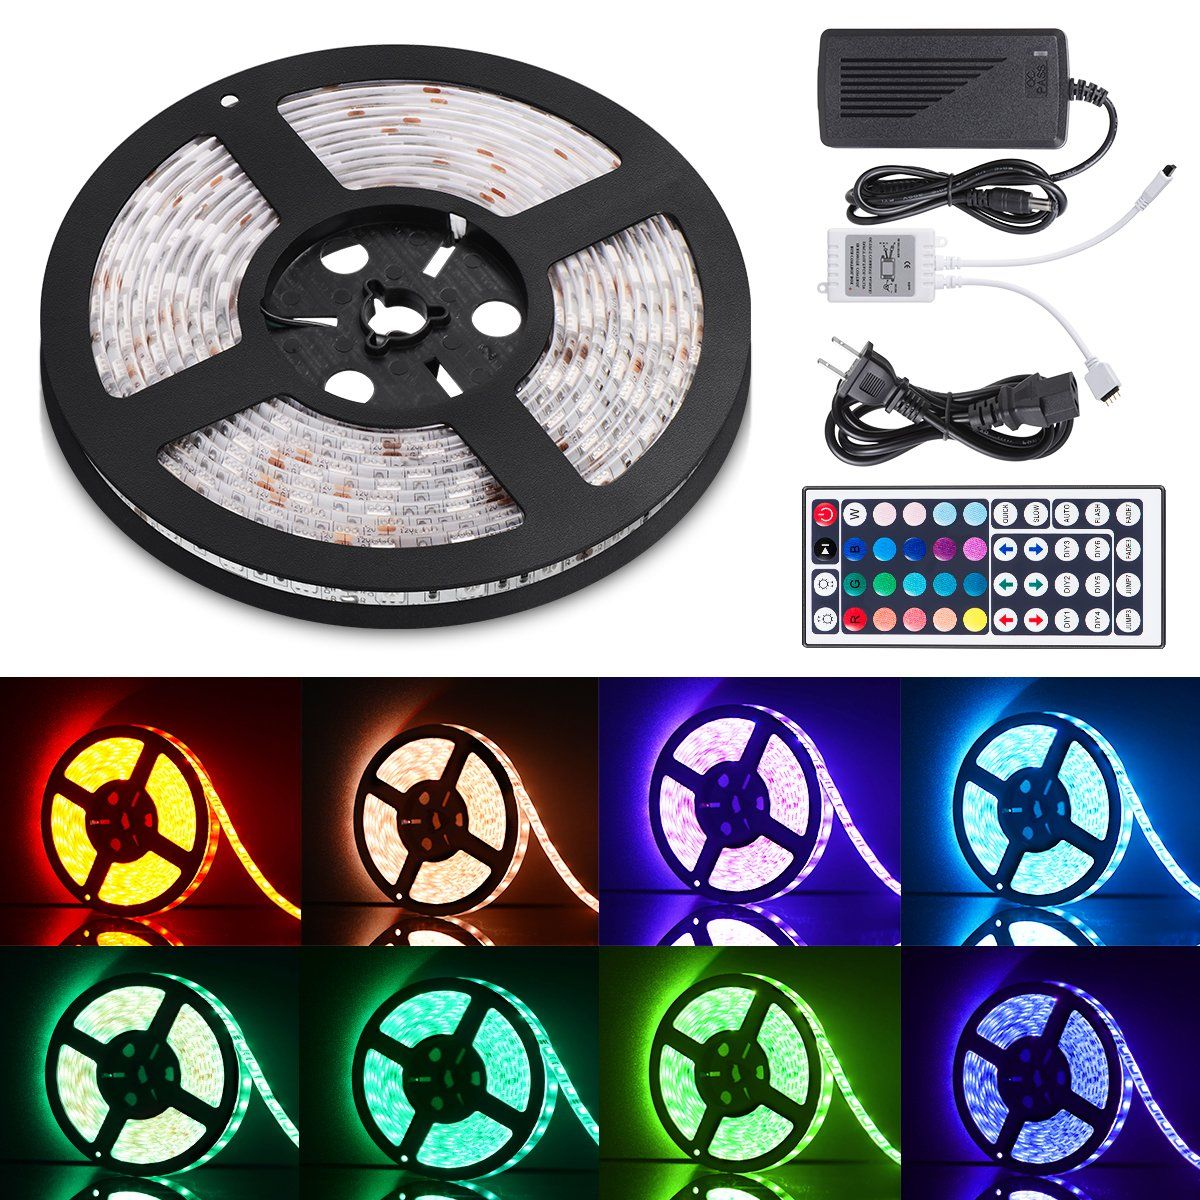 Sunnest Led Light Strip Waterproof 16 4ft Smd 5050 300leds 12v Dc Flexible Light Strips Led Tape Rgb Led Str Led Strip Lighting Strip Lighting Led Light Strips